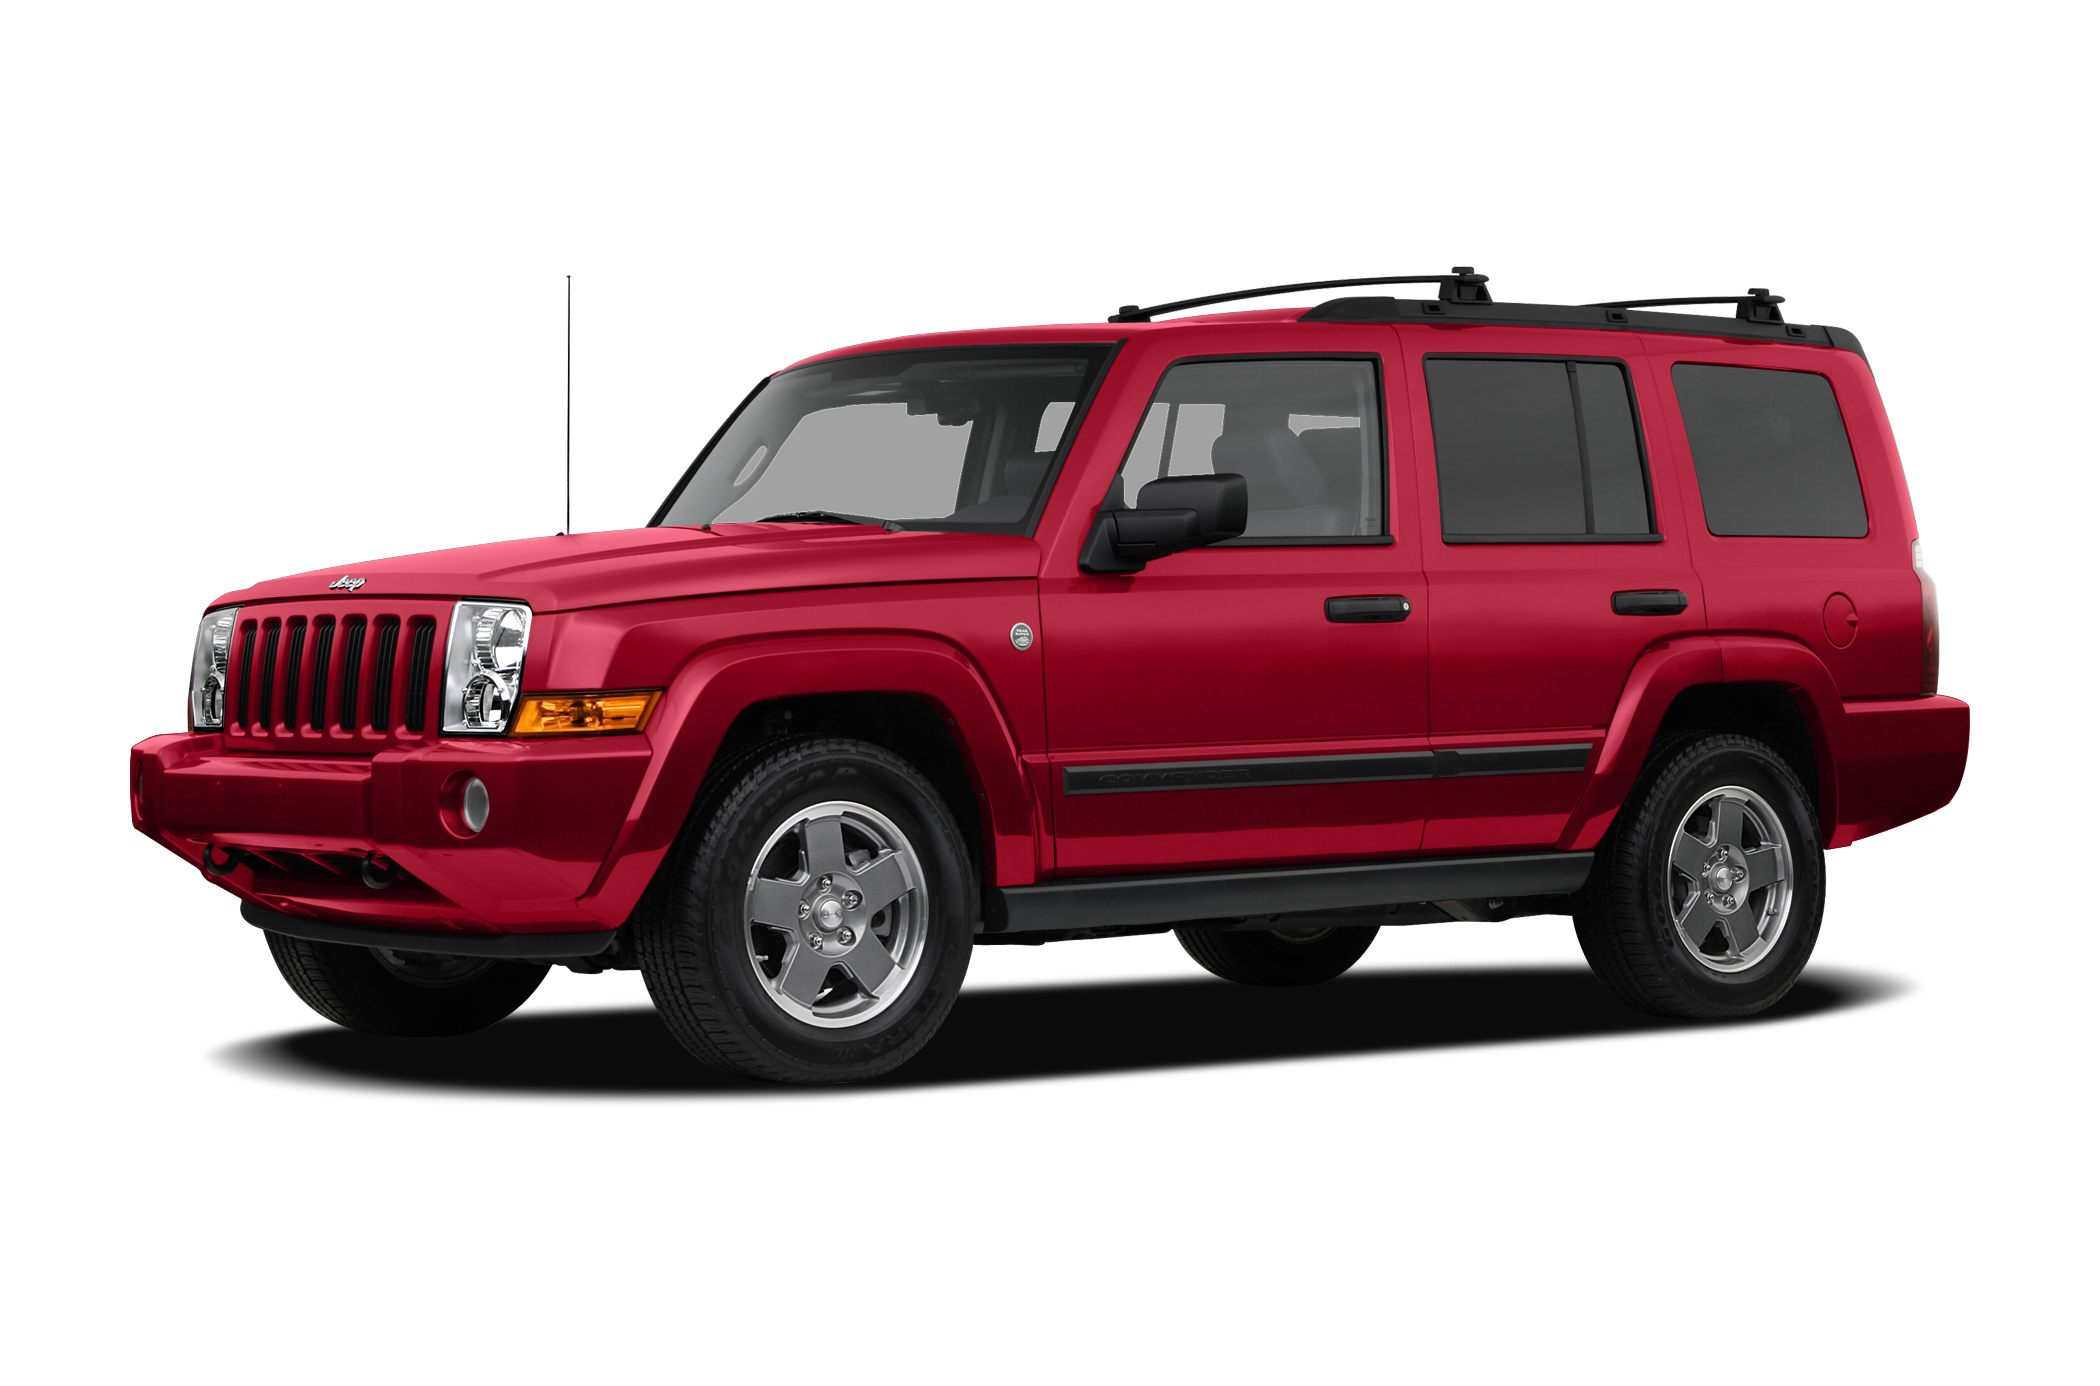 2006 Jeep Commander Limited SUV for sale in Brentwood for $14,999 with 127,143 miles.